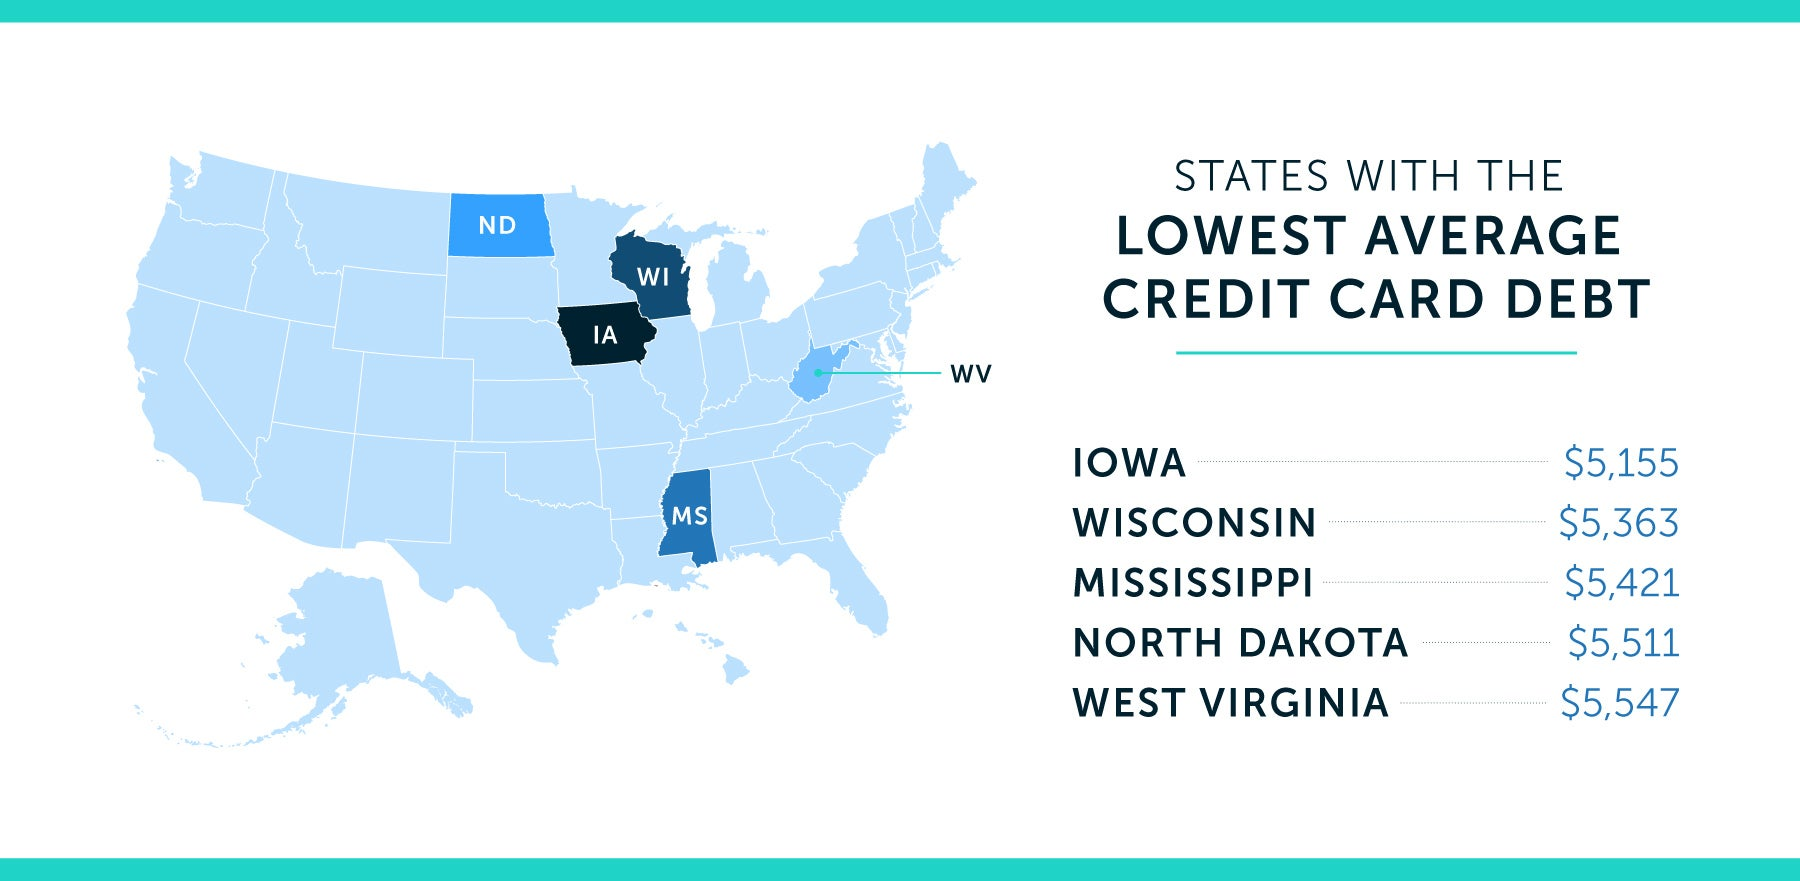 states with lowest average credit card debt